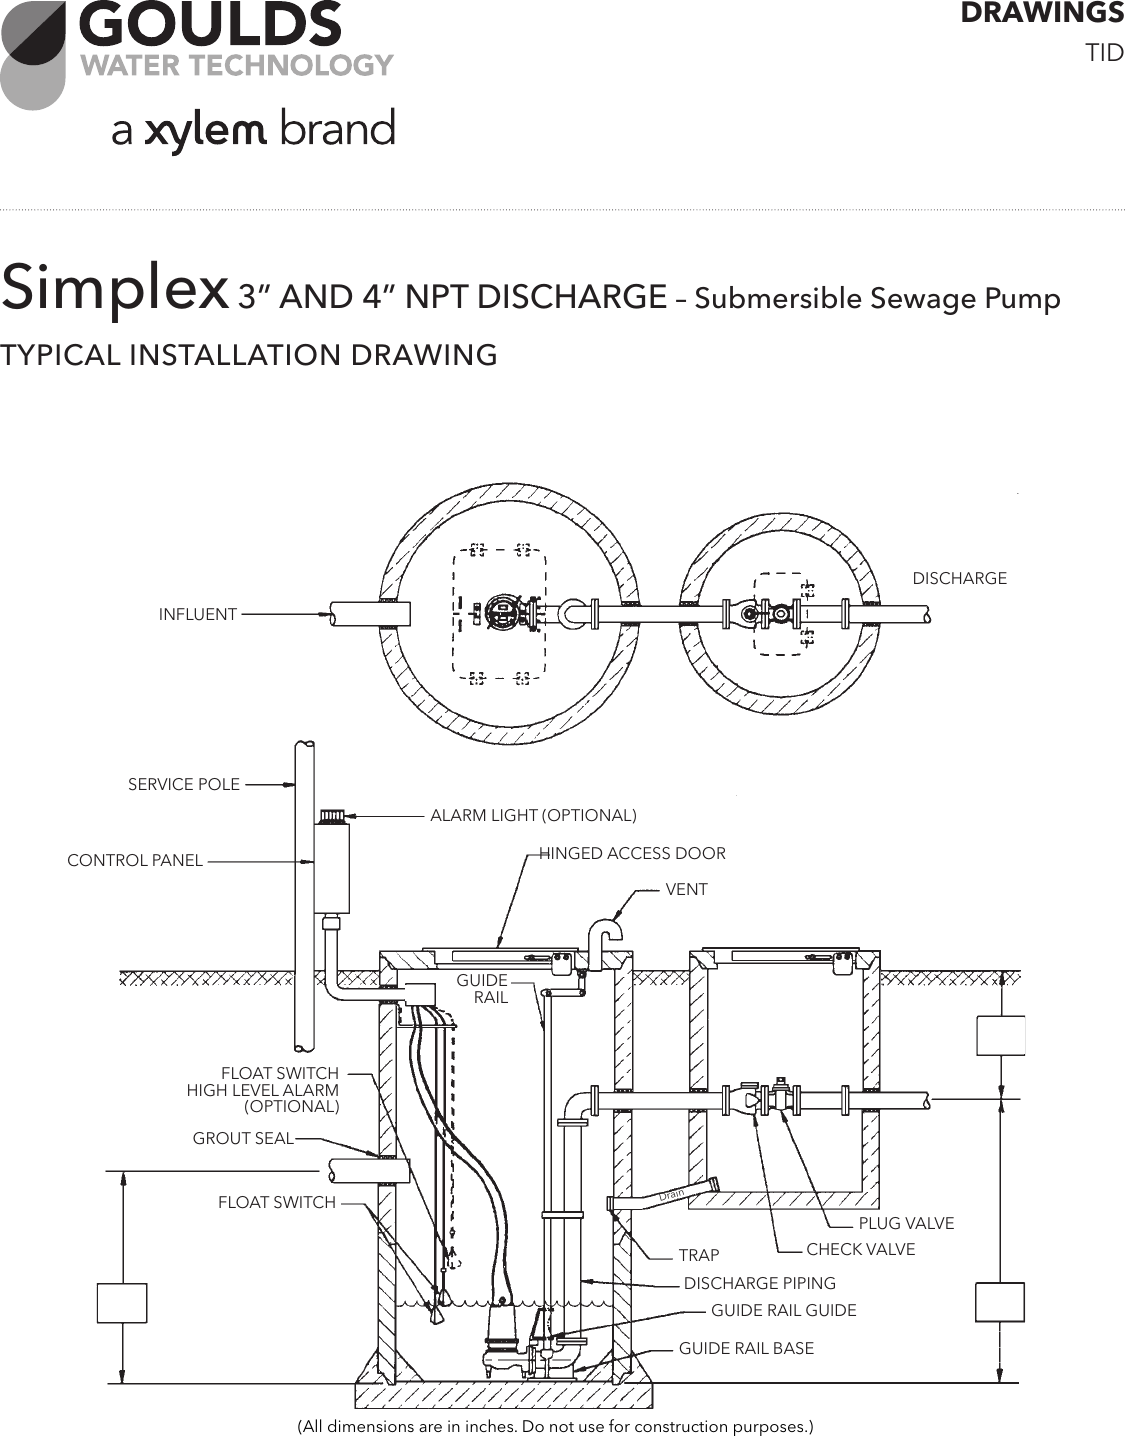 538615 5 Goulds 1GD Dual Seal Grinder Pump Installation Drawing